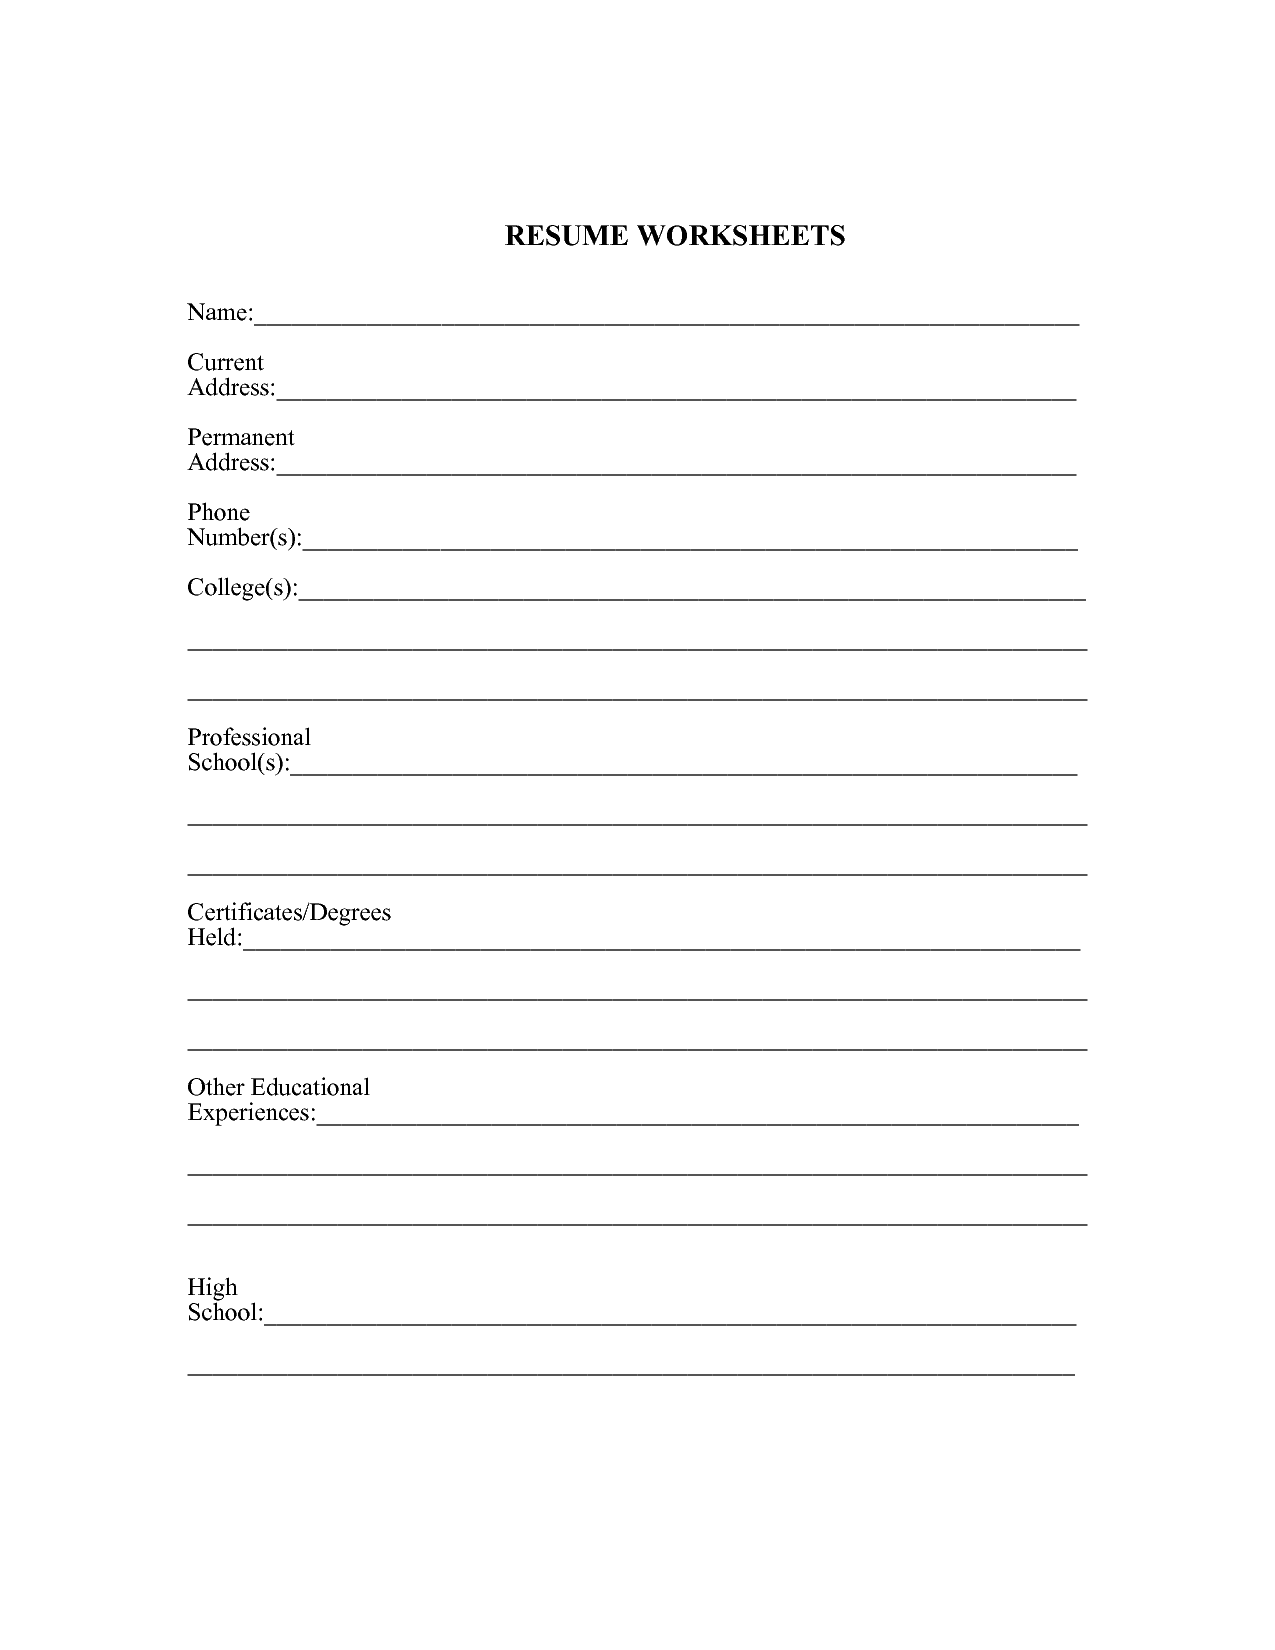 worksheet. Resume Worksheet For High School Students. Grass Fedjp ...